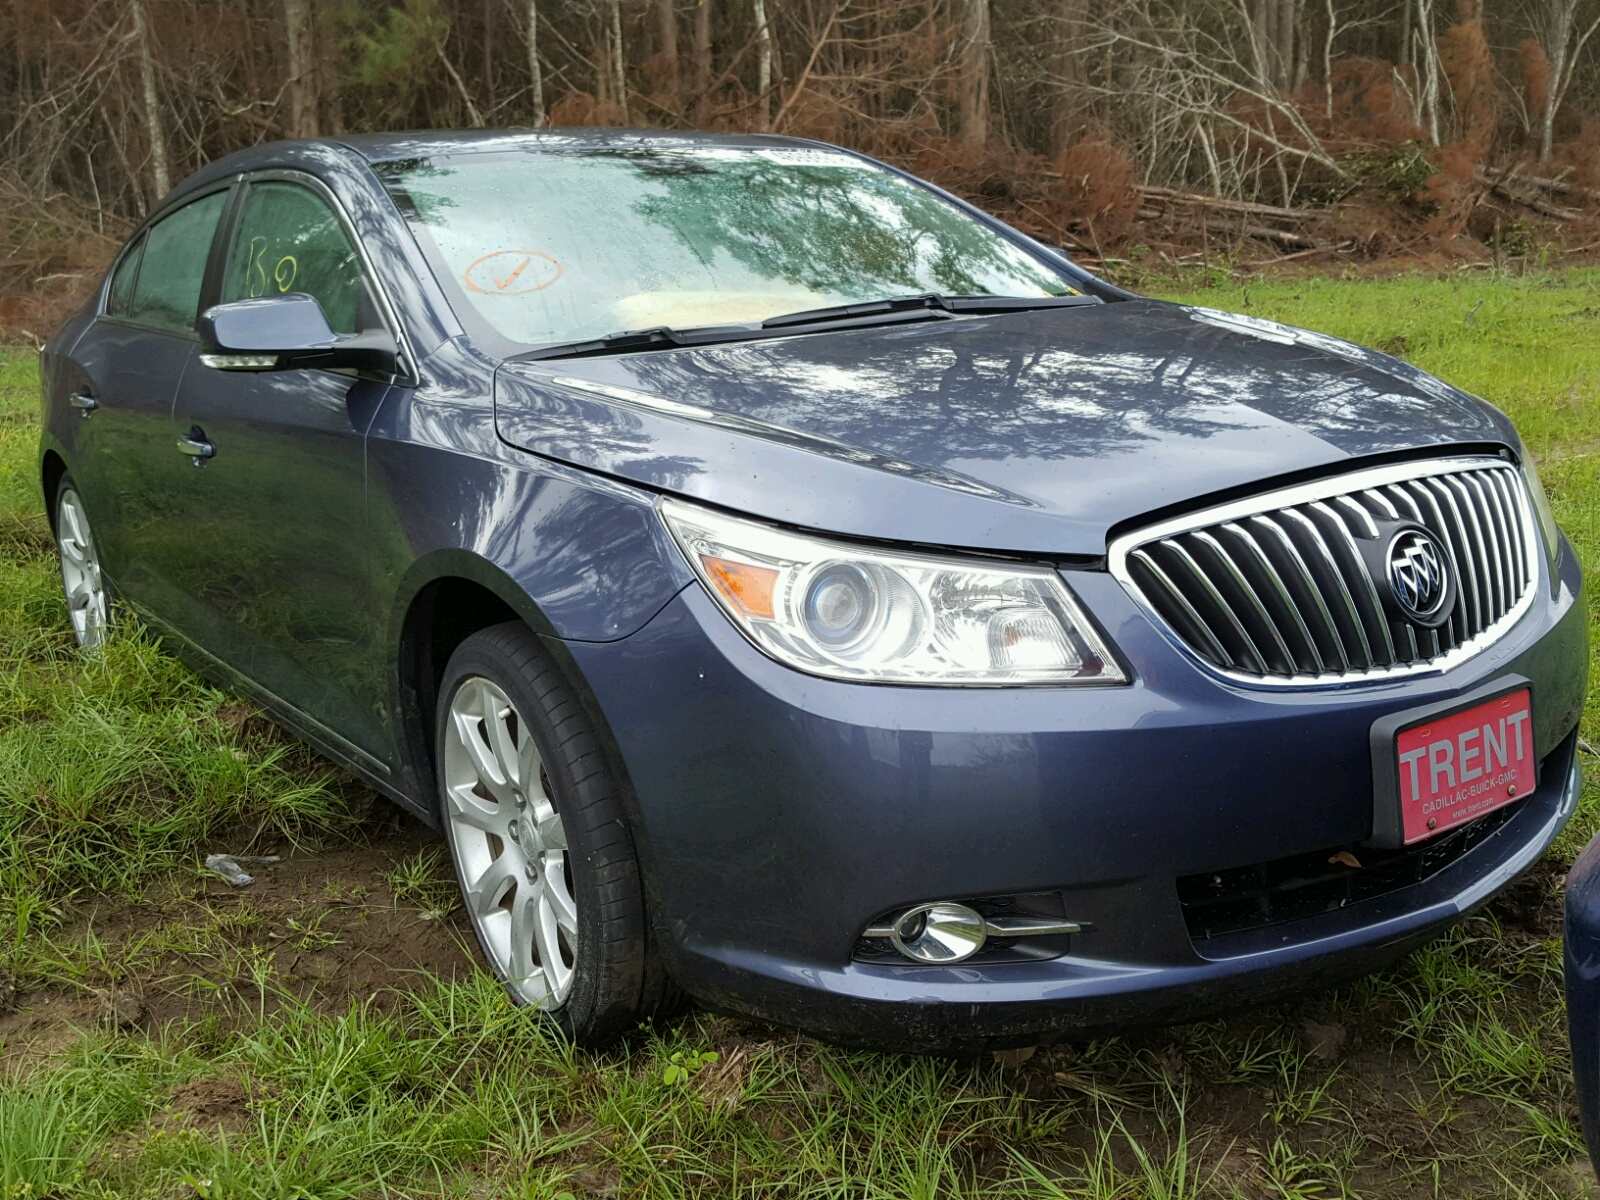 Salvage 2013 Buick LACROSSE T for sale